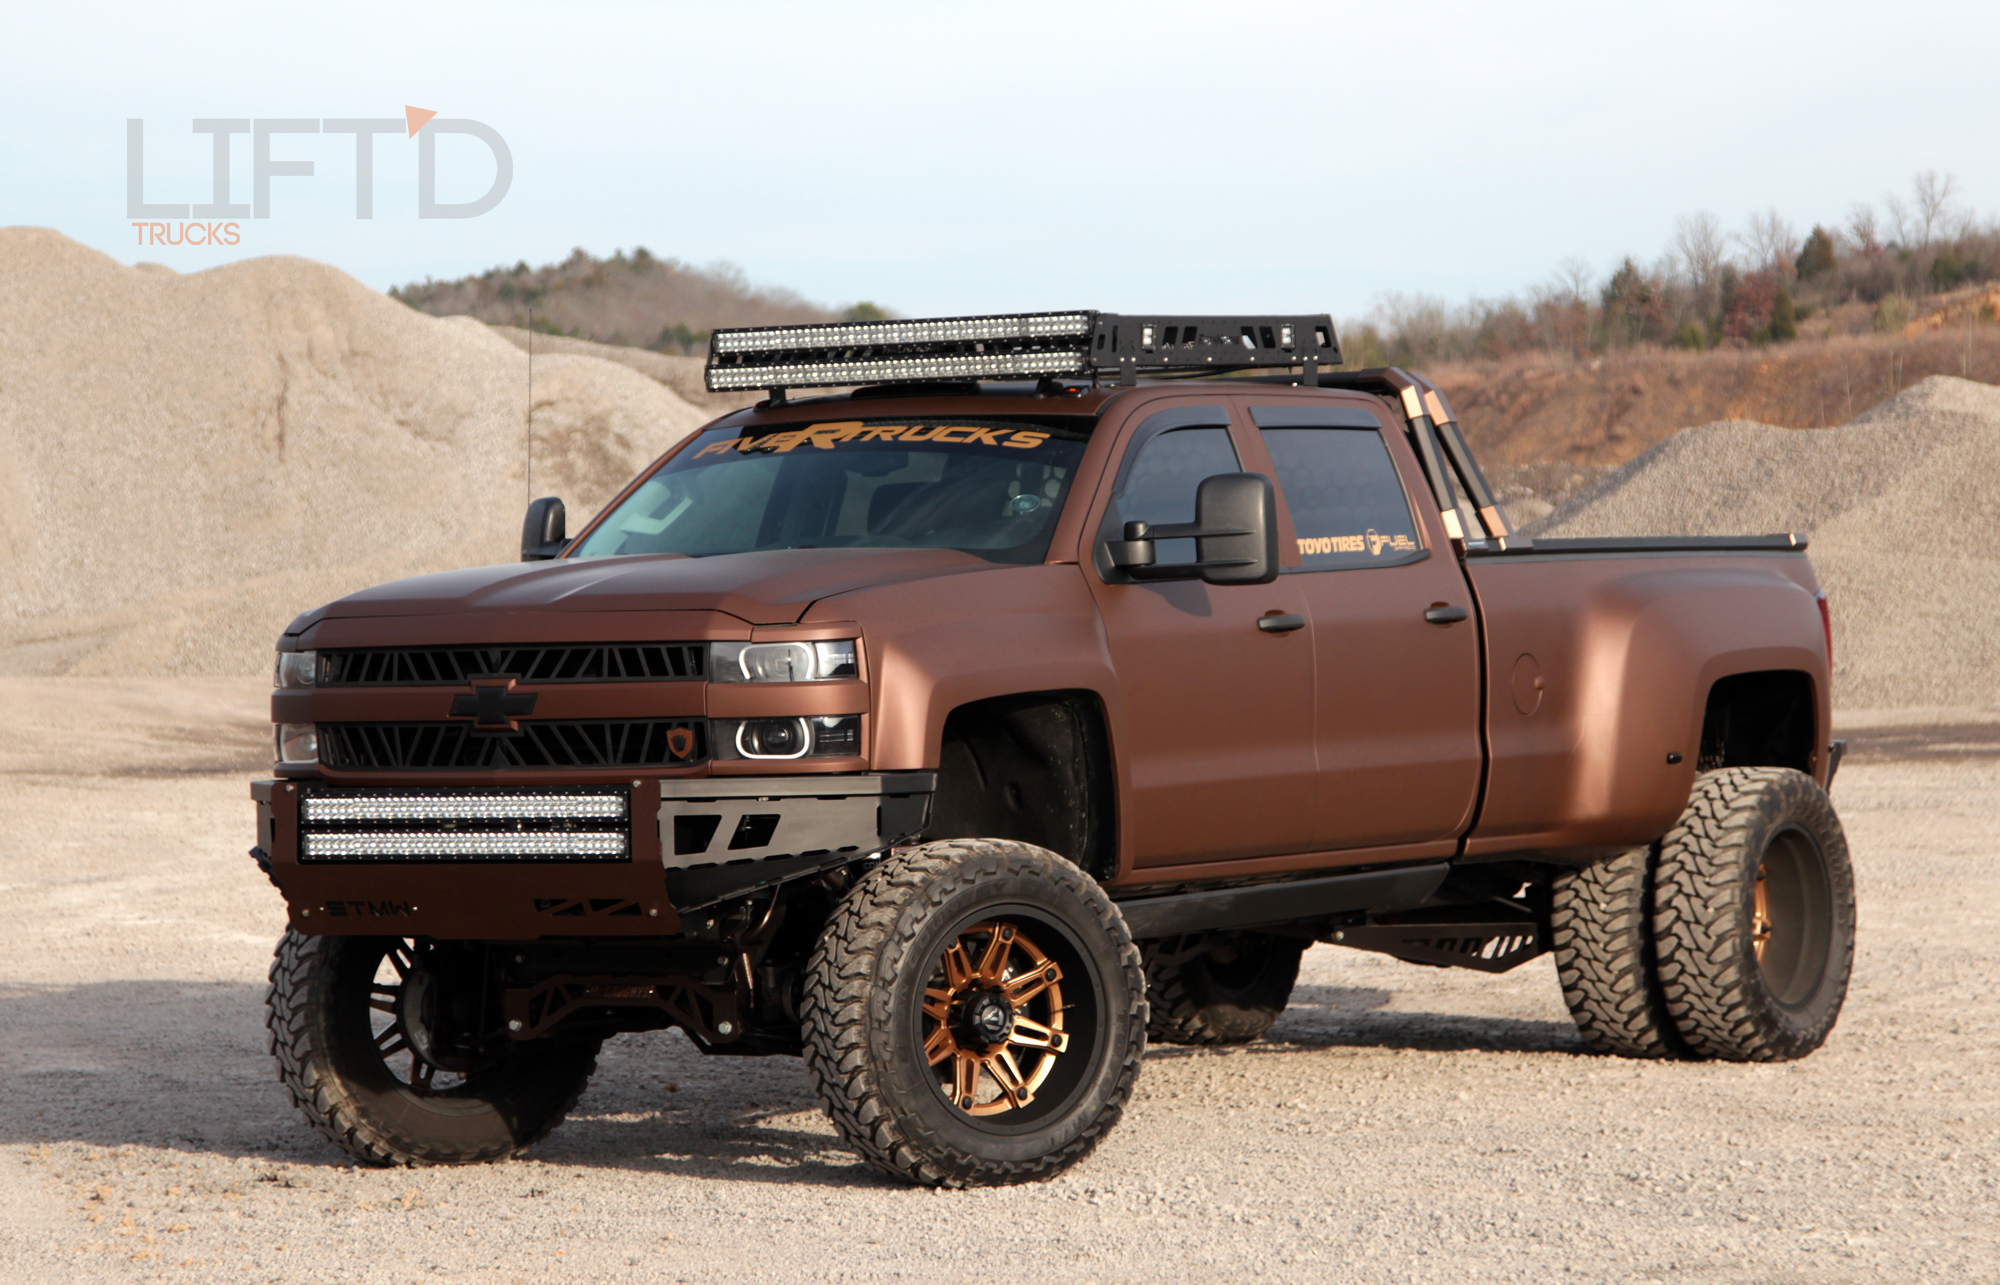 Recluse Keg Media S 2015 Chevy Silverado Hd3500 Dually